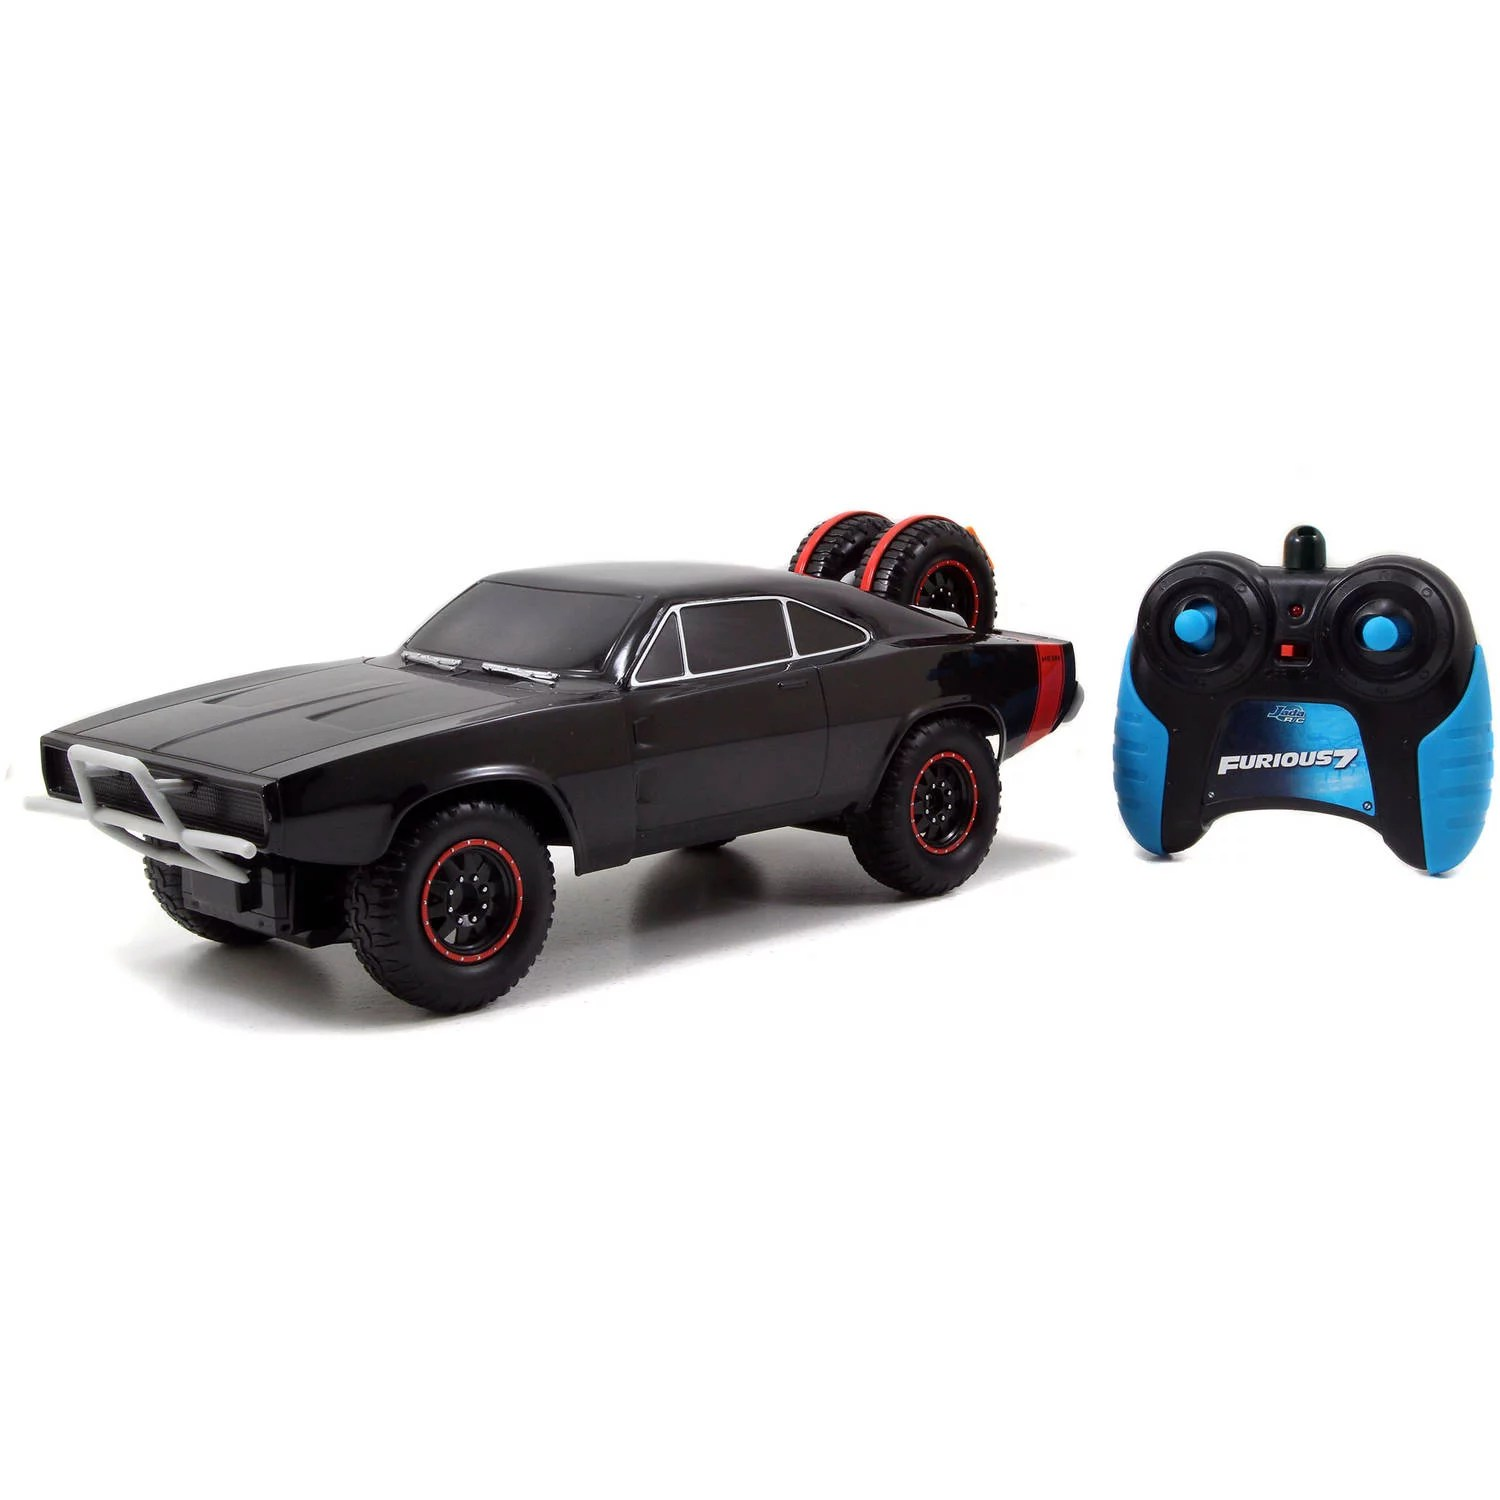 Big W Toy Cars Midea Tech On Walmart Seller Reviews Marketplace Rating